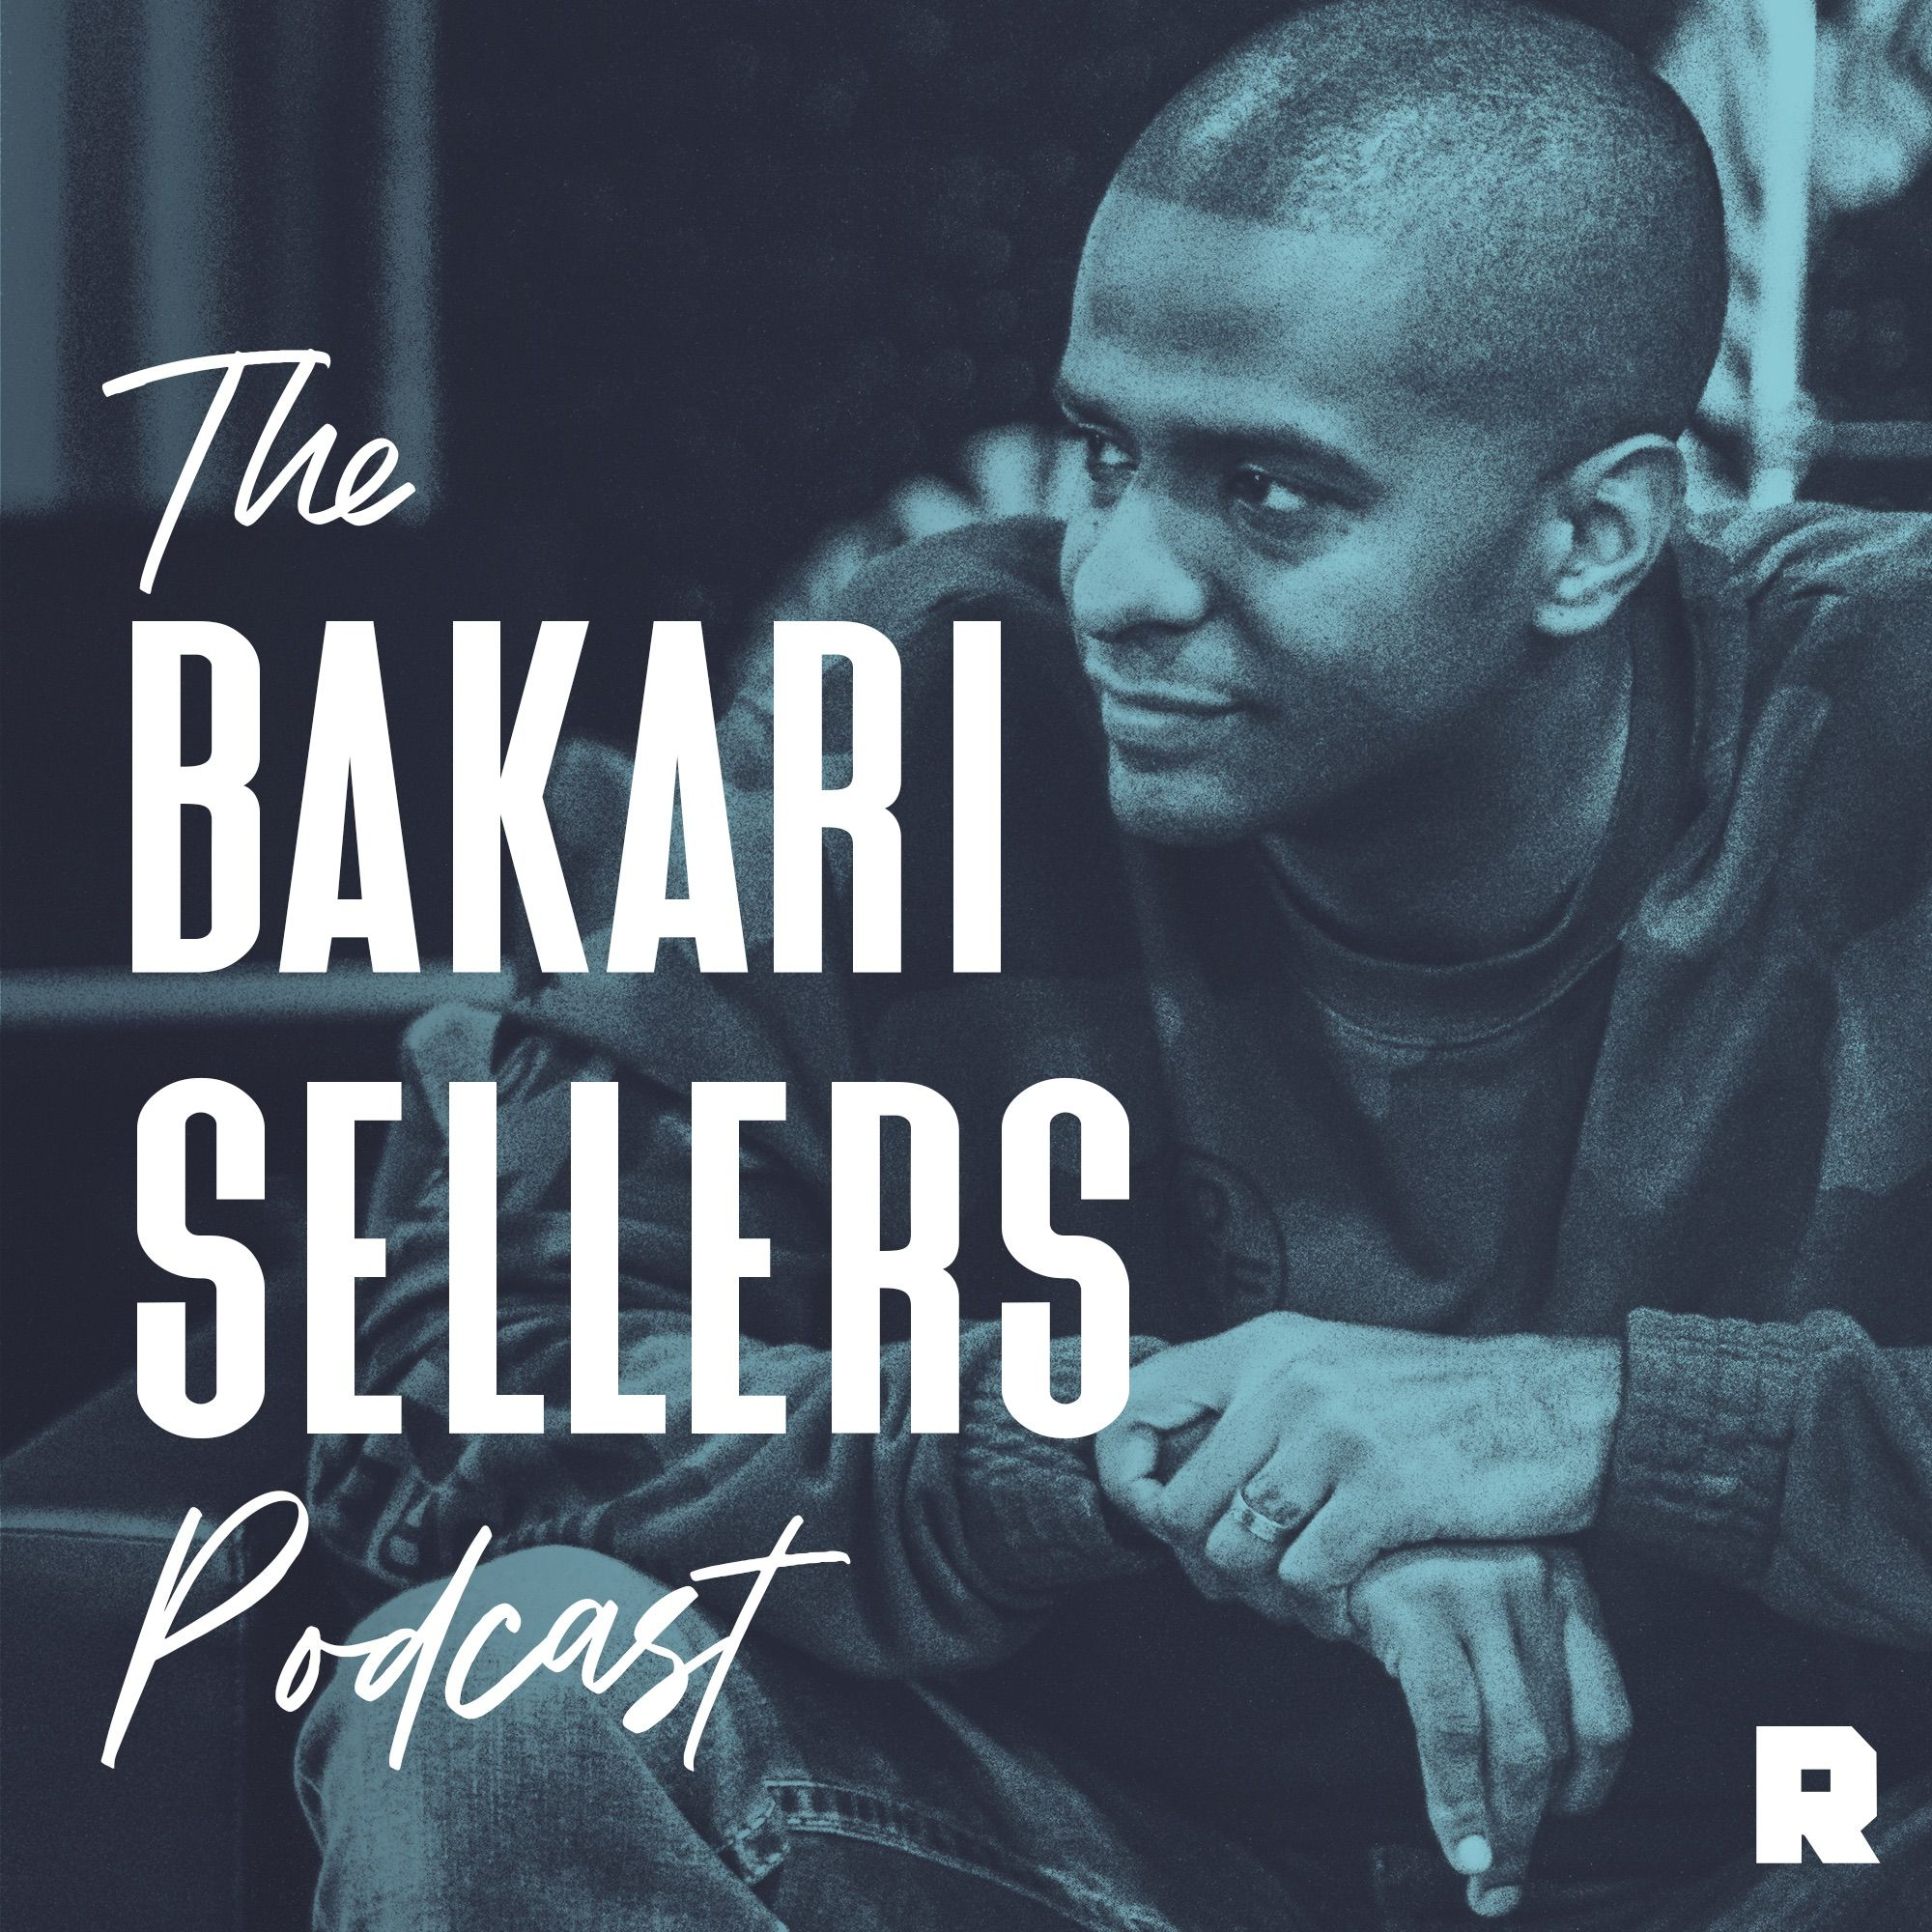 Introducing 'The Bakari Sellers Podcast'